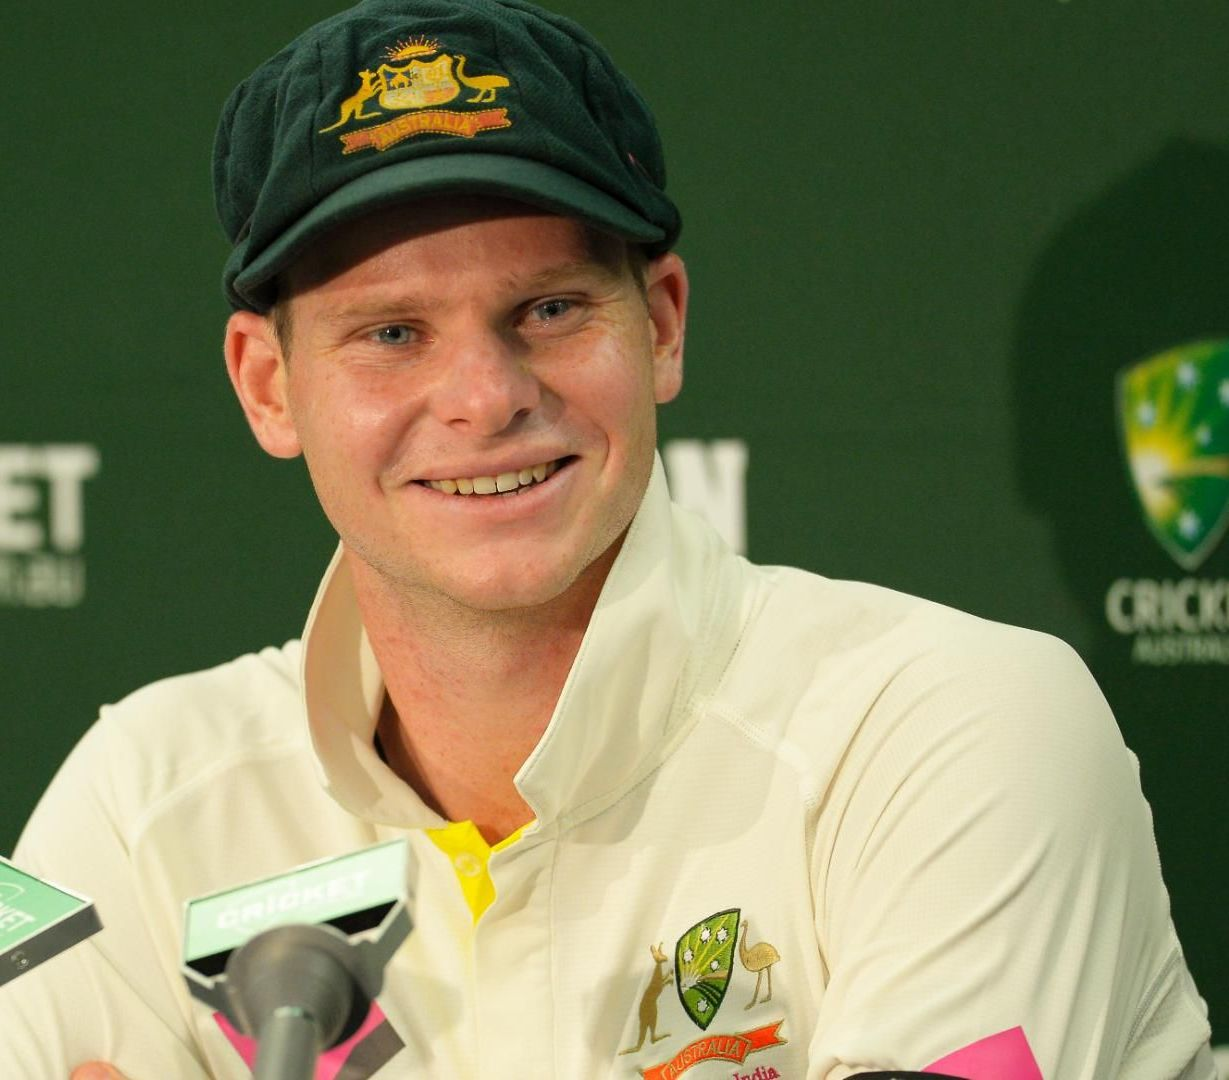 ICC Awards 2017: Steve Smith wins ICC Test Cricketer of the Year